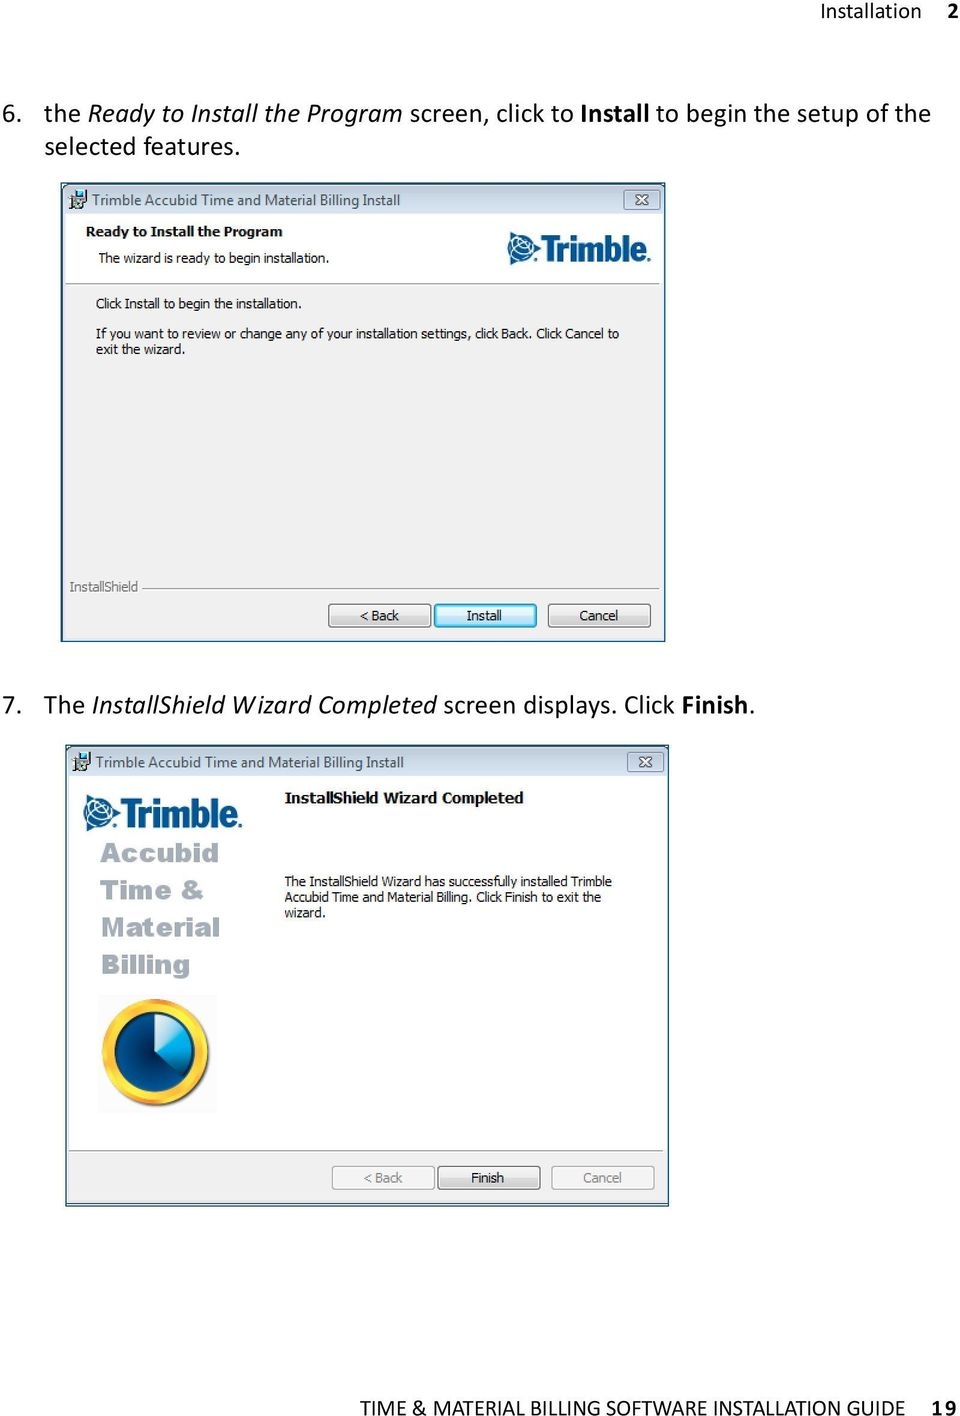 Installation Guide  Trimble Accubid Time & Material Billing